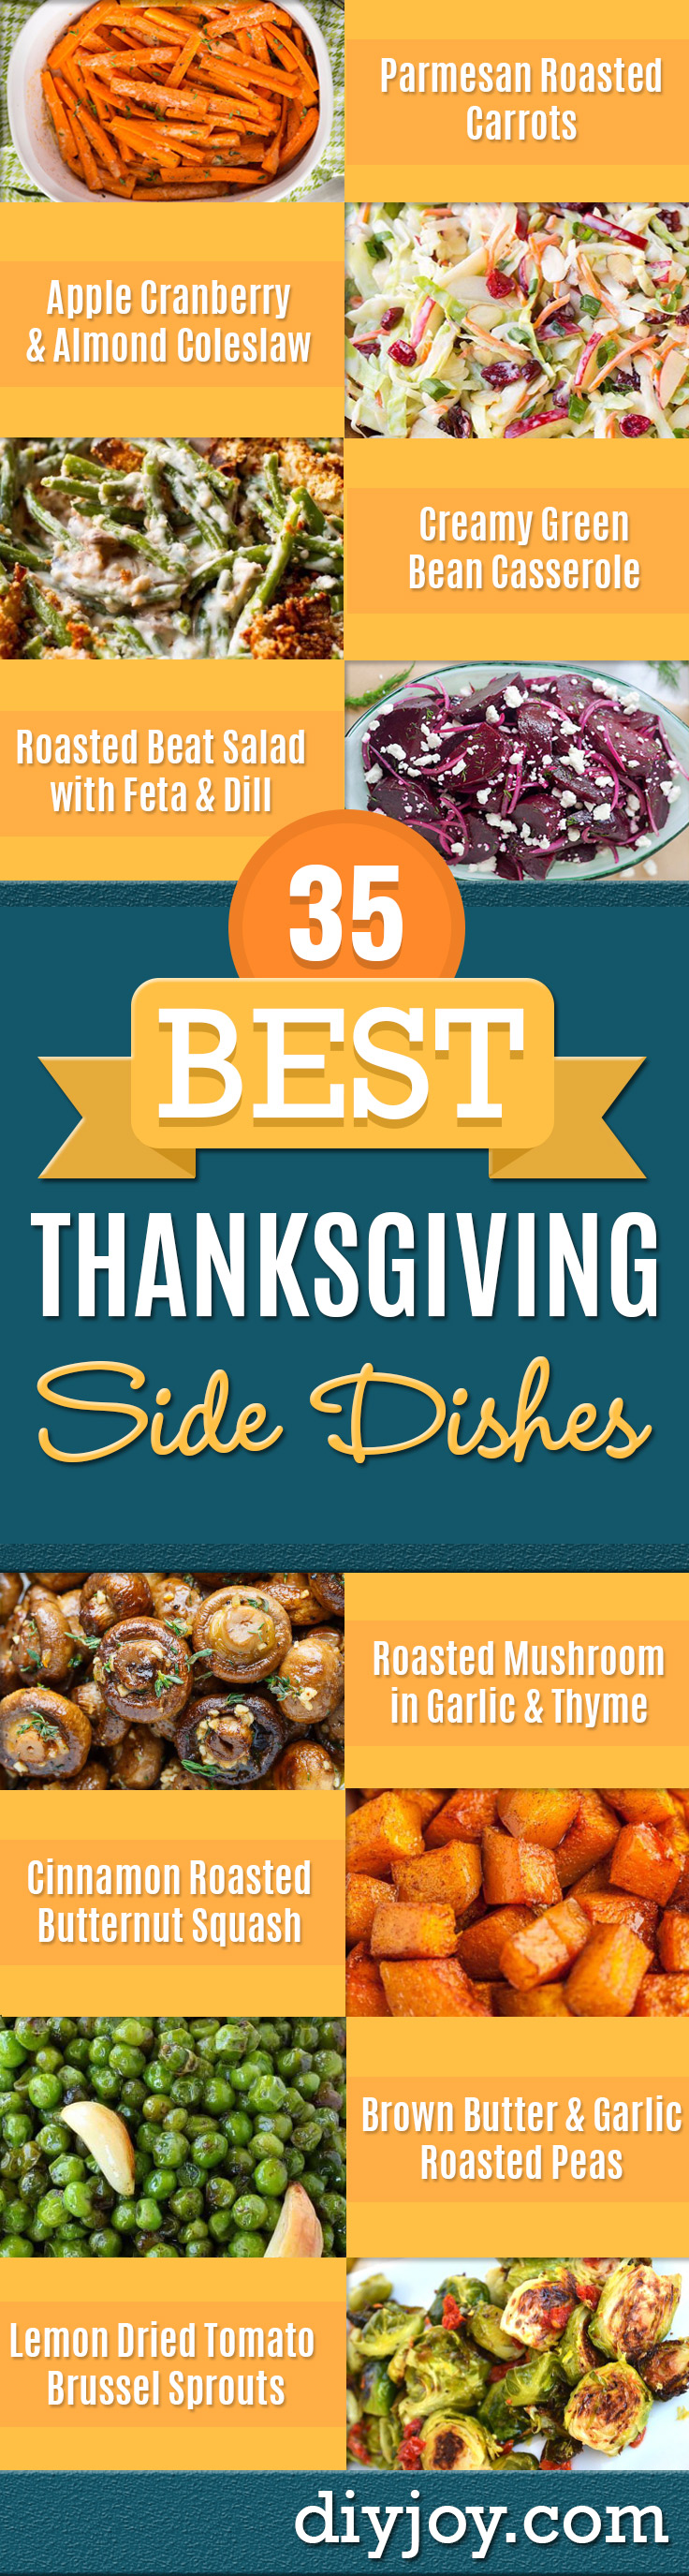 Best Thanksgiving Side Dishes - Easy Make Ahead and Crockpot Versions of the Best Thanksgiving Recipes - Southern Vegetable Casseroles, Traditional Sides Like Corn, Stuffing, Potatoes, Spinach, Sweet Potatoes, Glazed Carrots - Healthy and Lowfat Side Dish Recipes - Thanksgiving Ideas for A Crowd http://diyjoy.com/best-thanksgiving-side-dishes